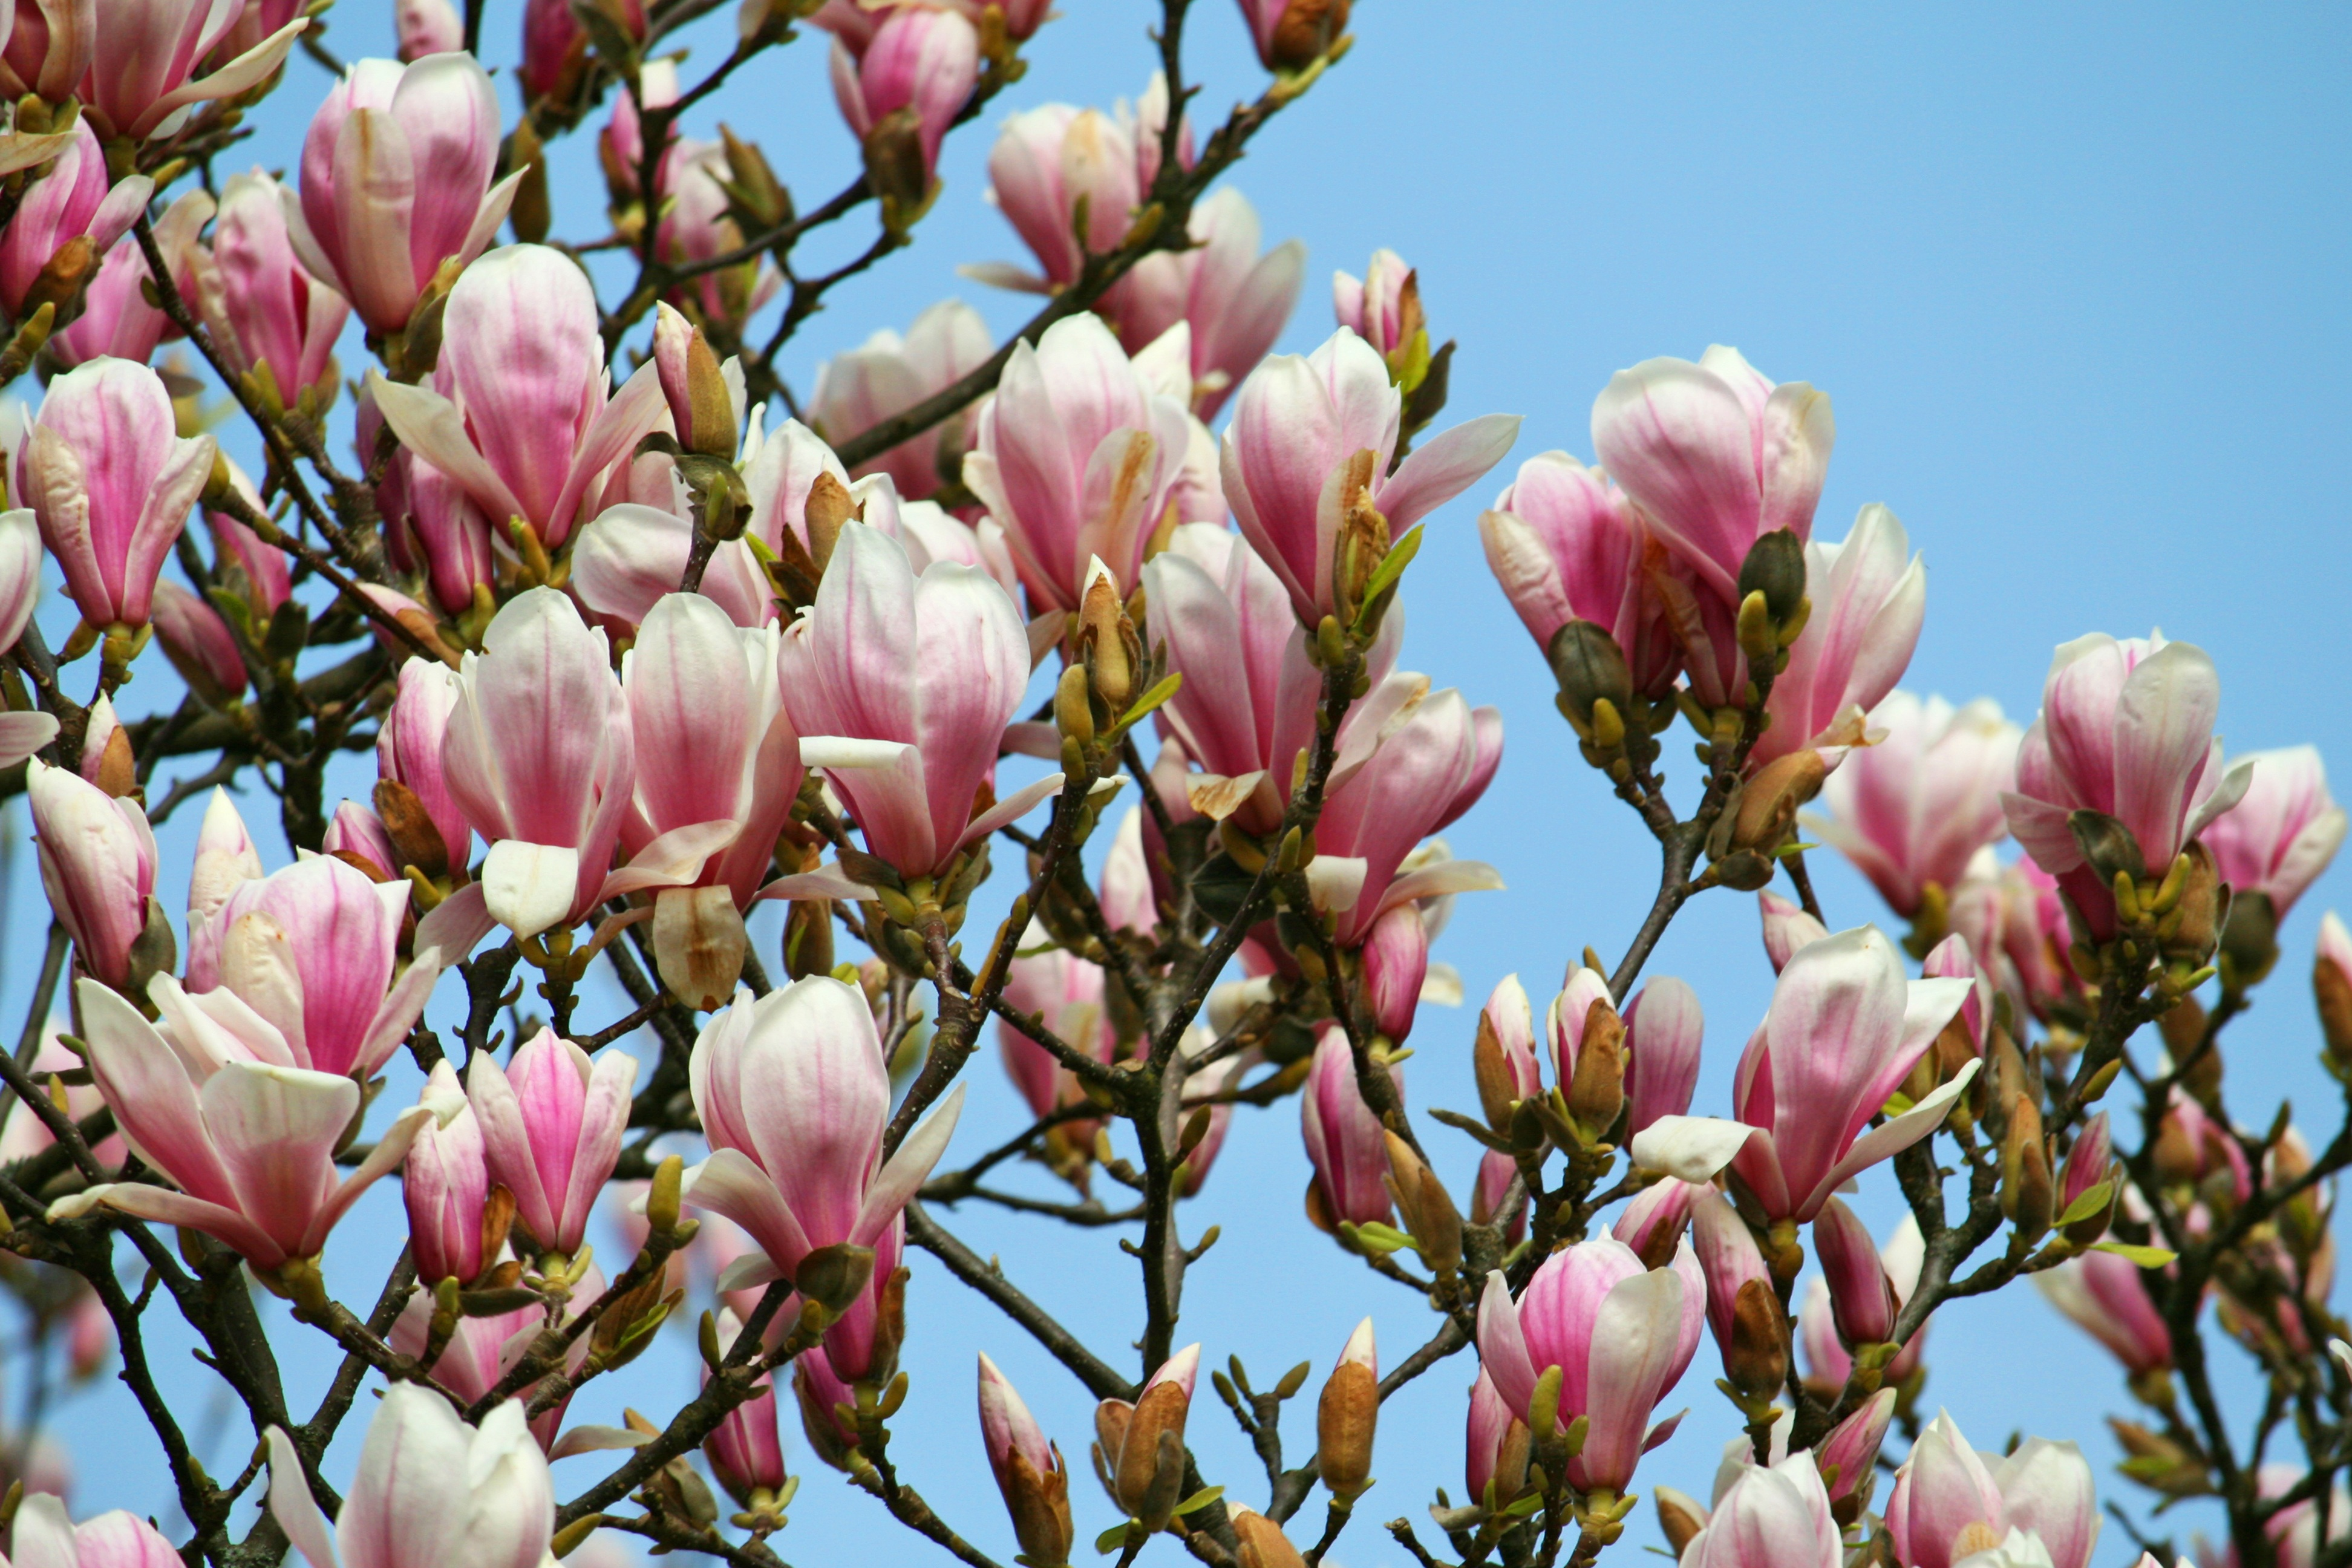 Pink Magnolia Tree Blossoms At Sky Free Image